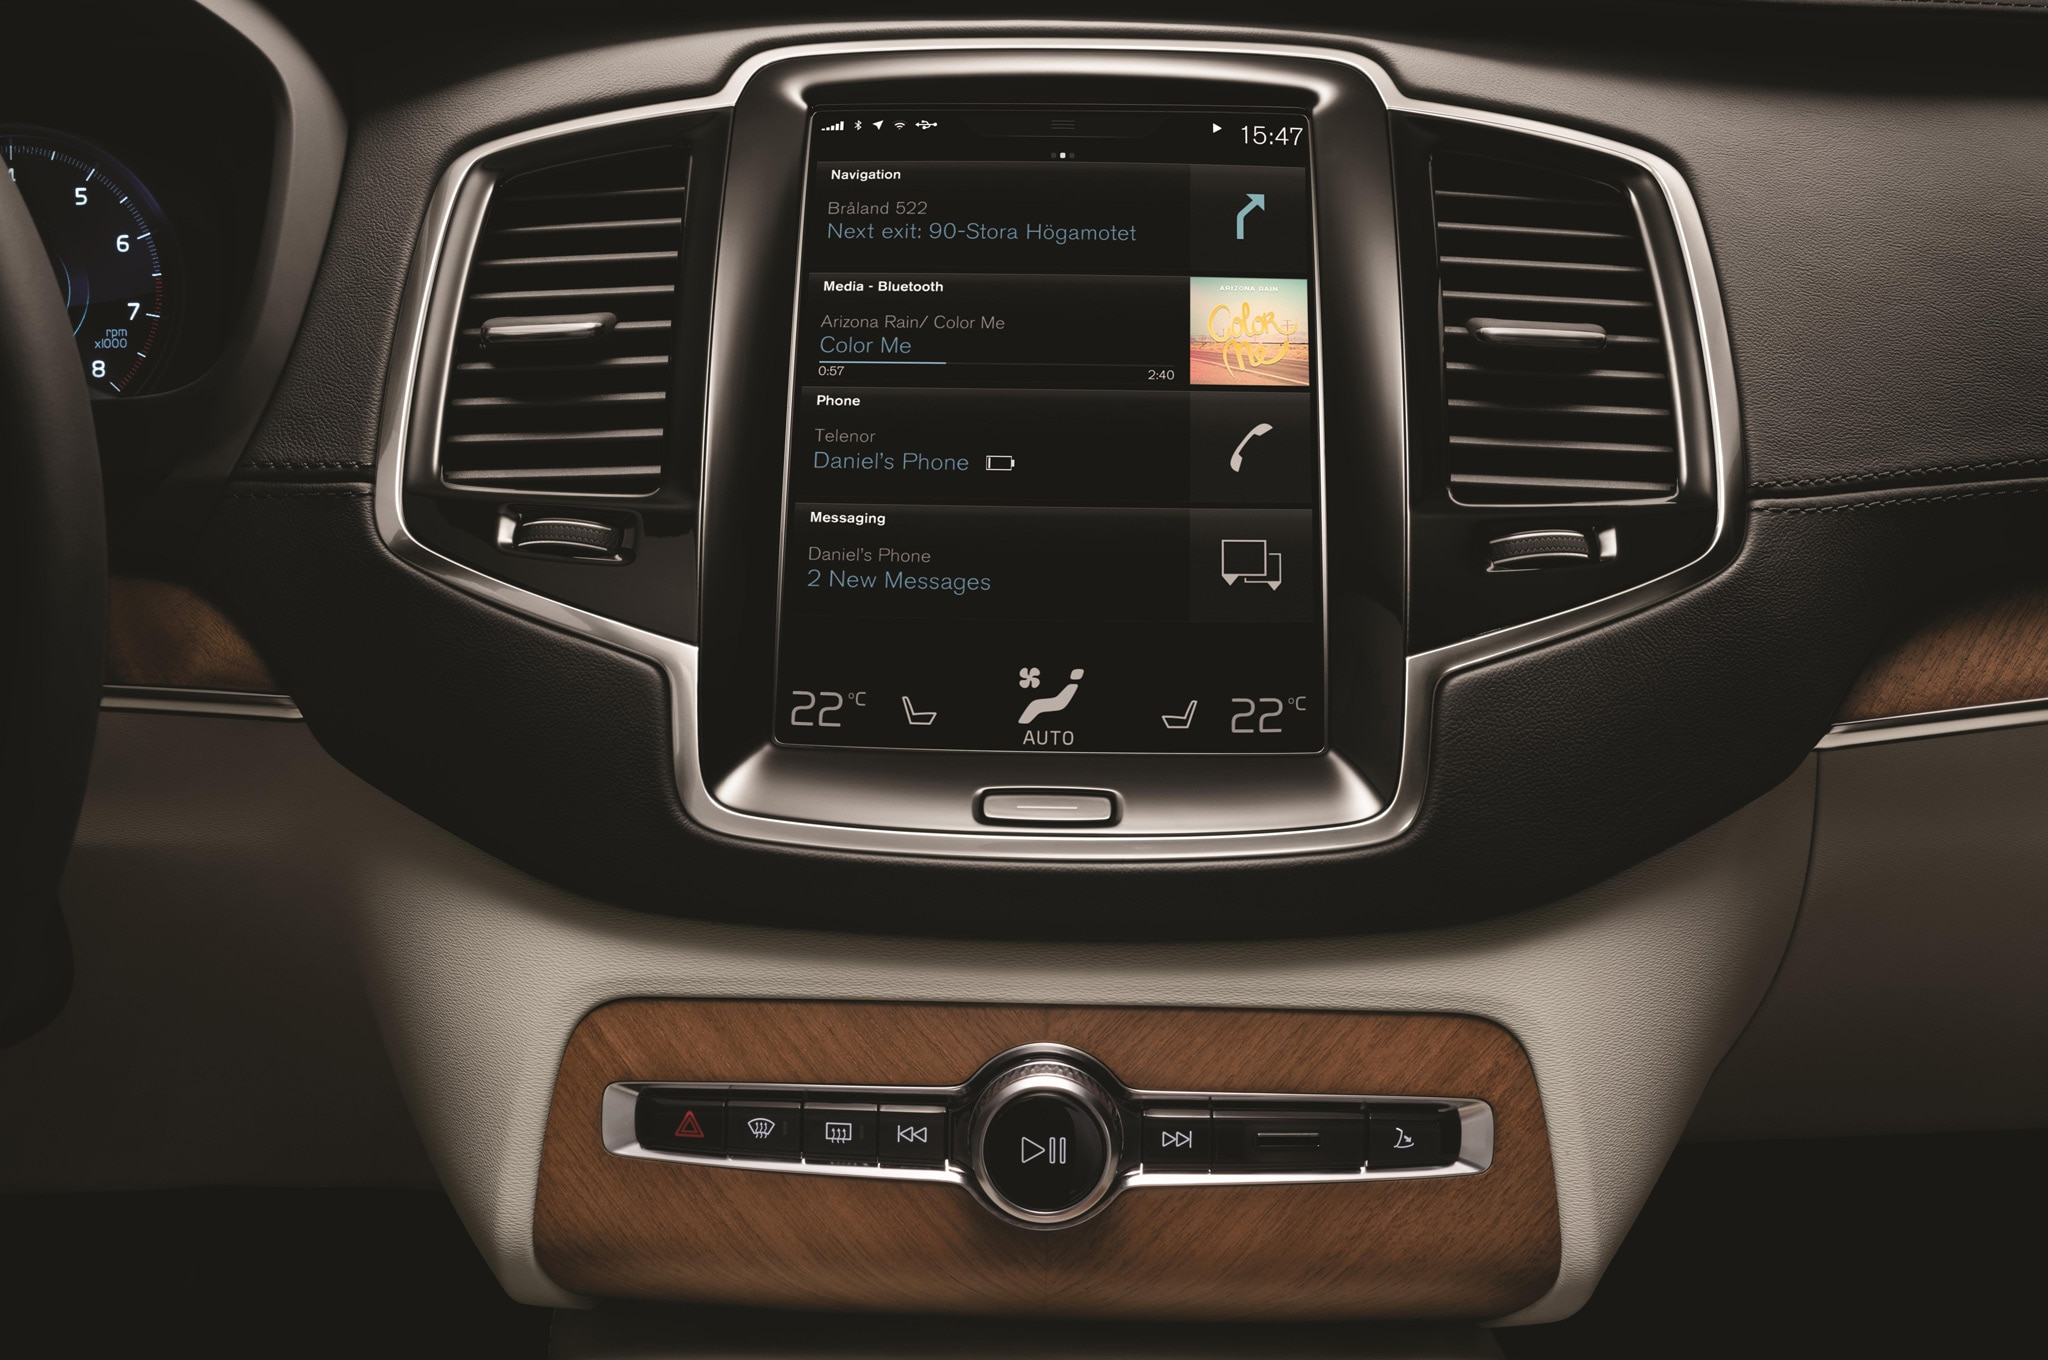 2015 Volvo XC90 Infotainment Touchscreen 21